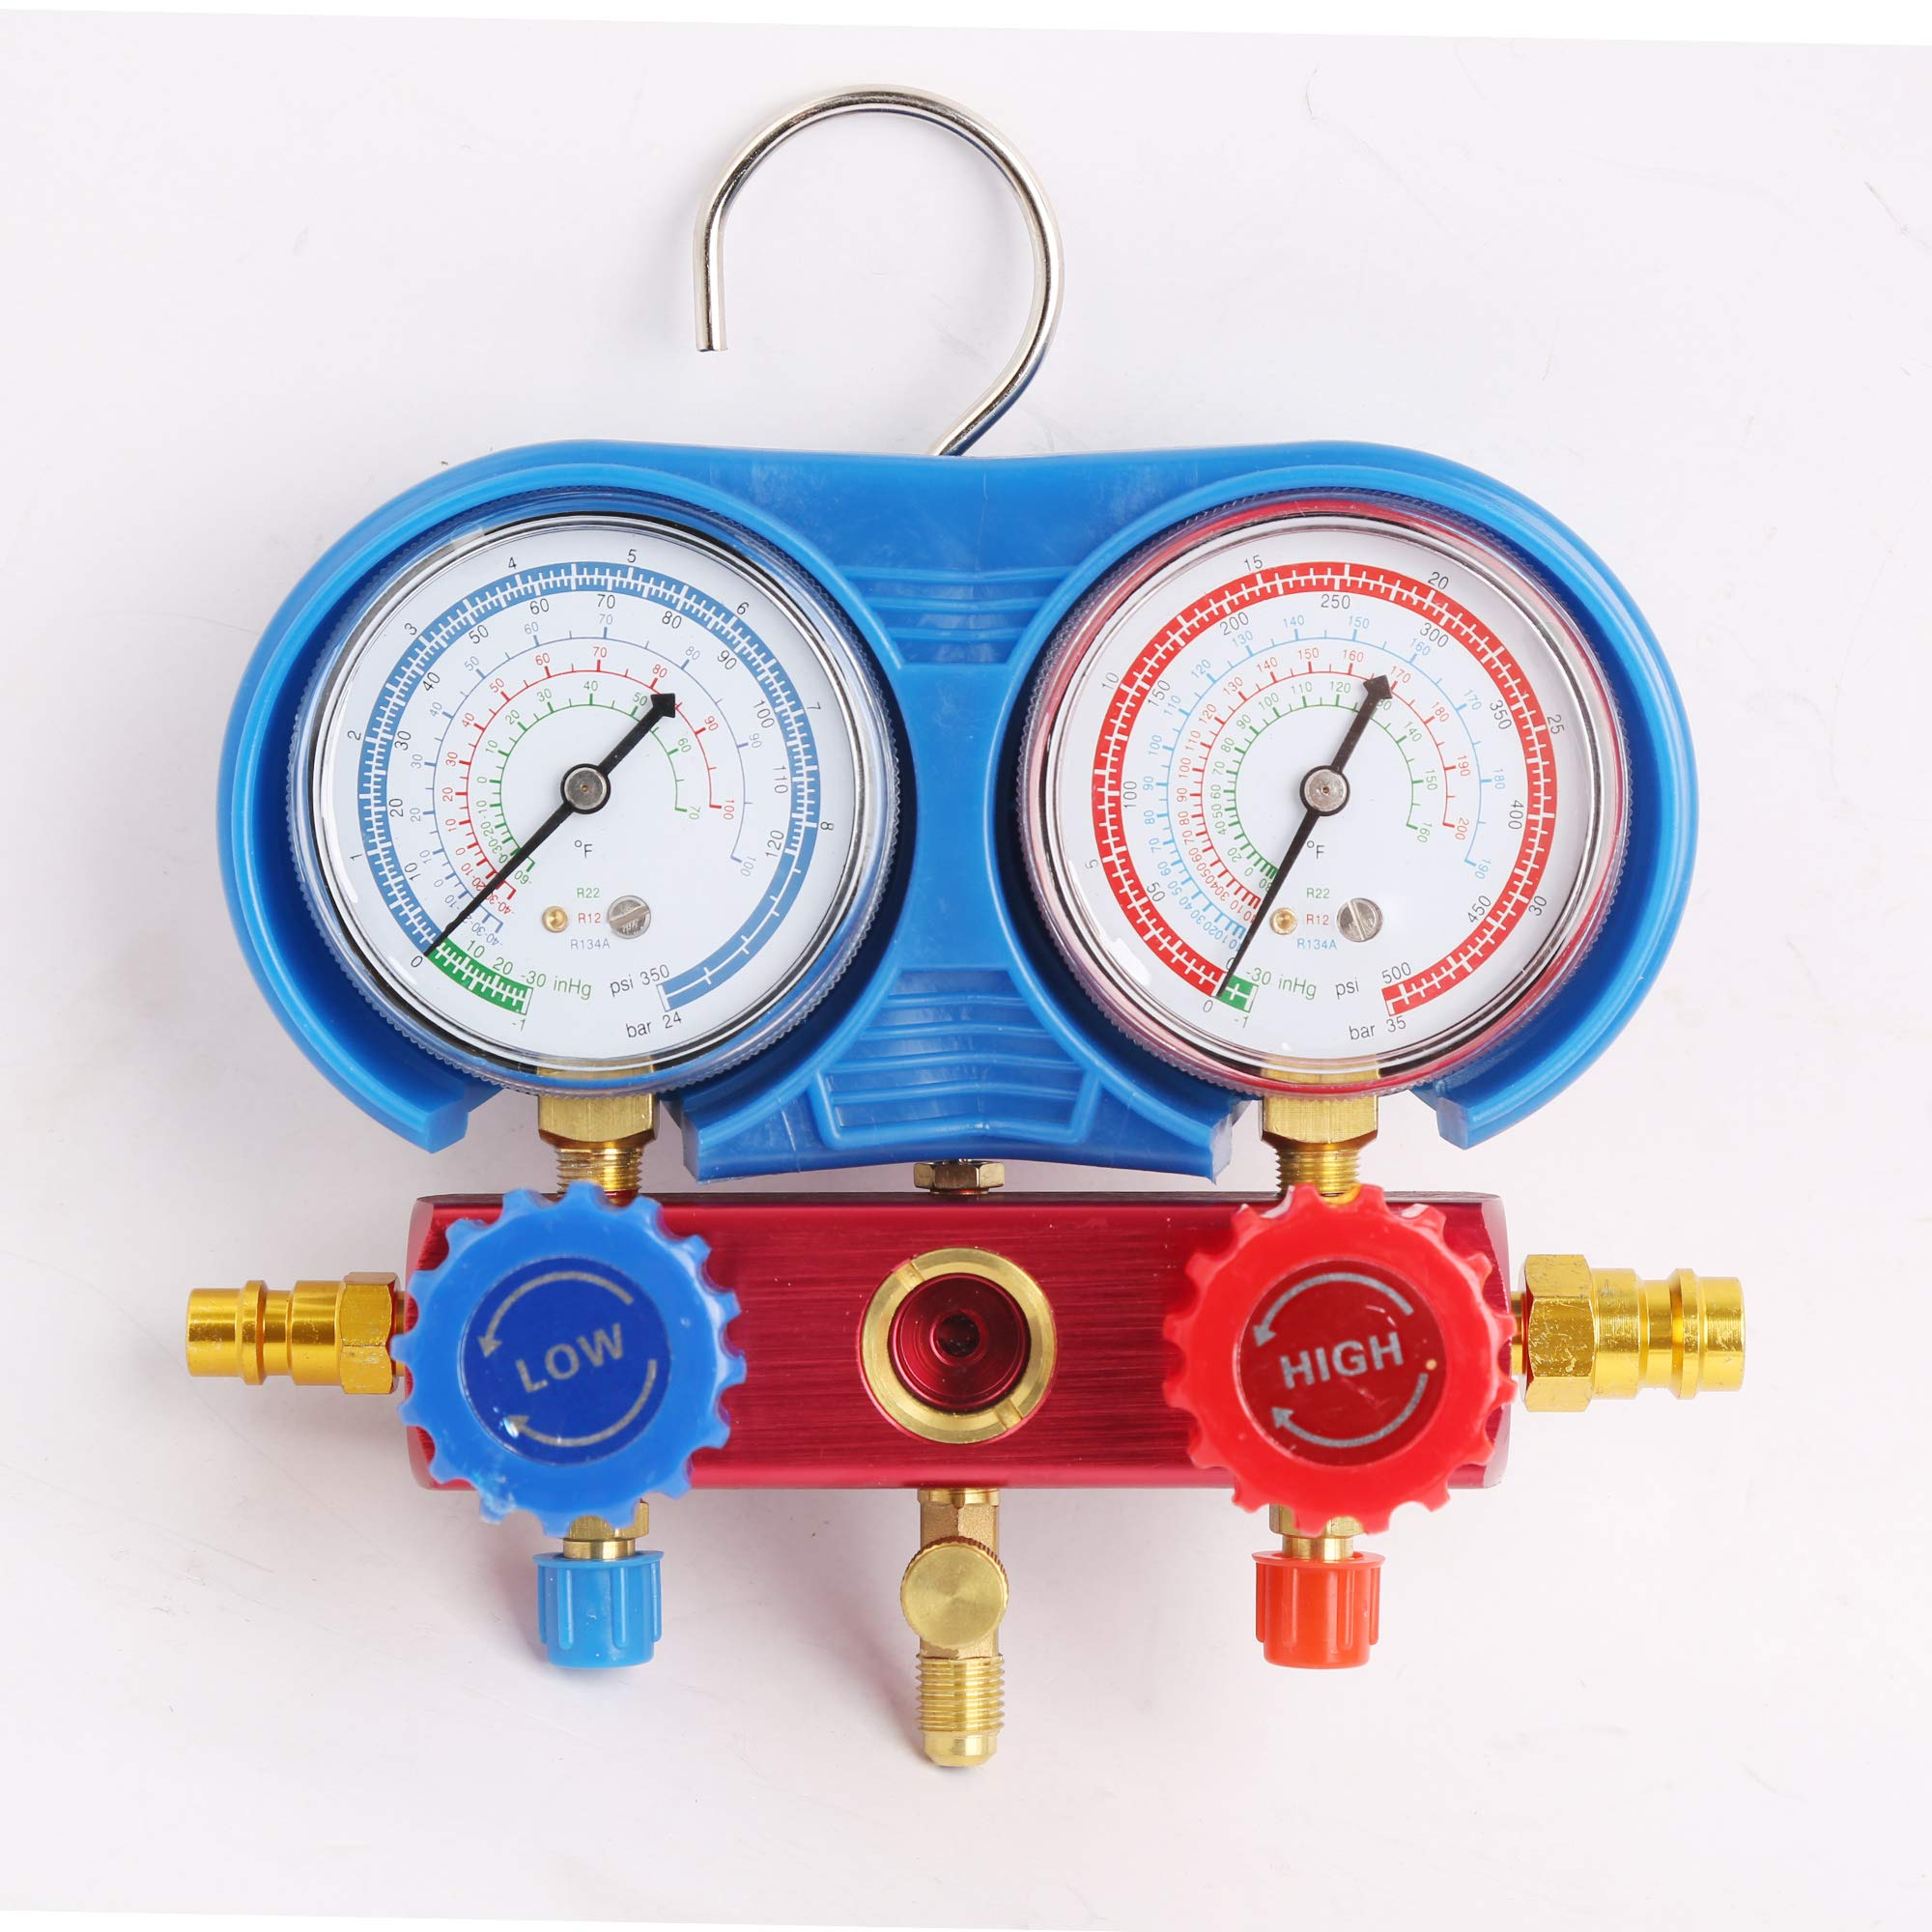 WIN.MAX Professional A/C Air Conditioner Refrigerant Manifold Gauge Kit Set R134a/R22/R12 HVAC + KapscoMoto Keychain by WIN.MAX (Image #3)